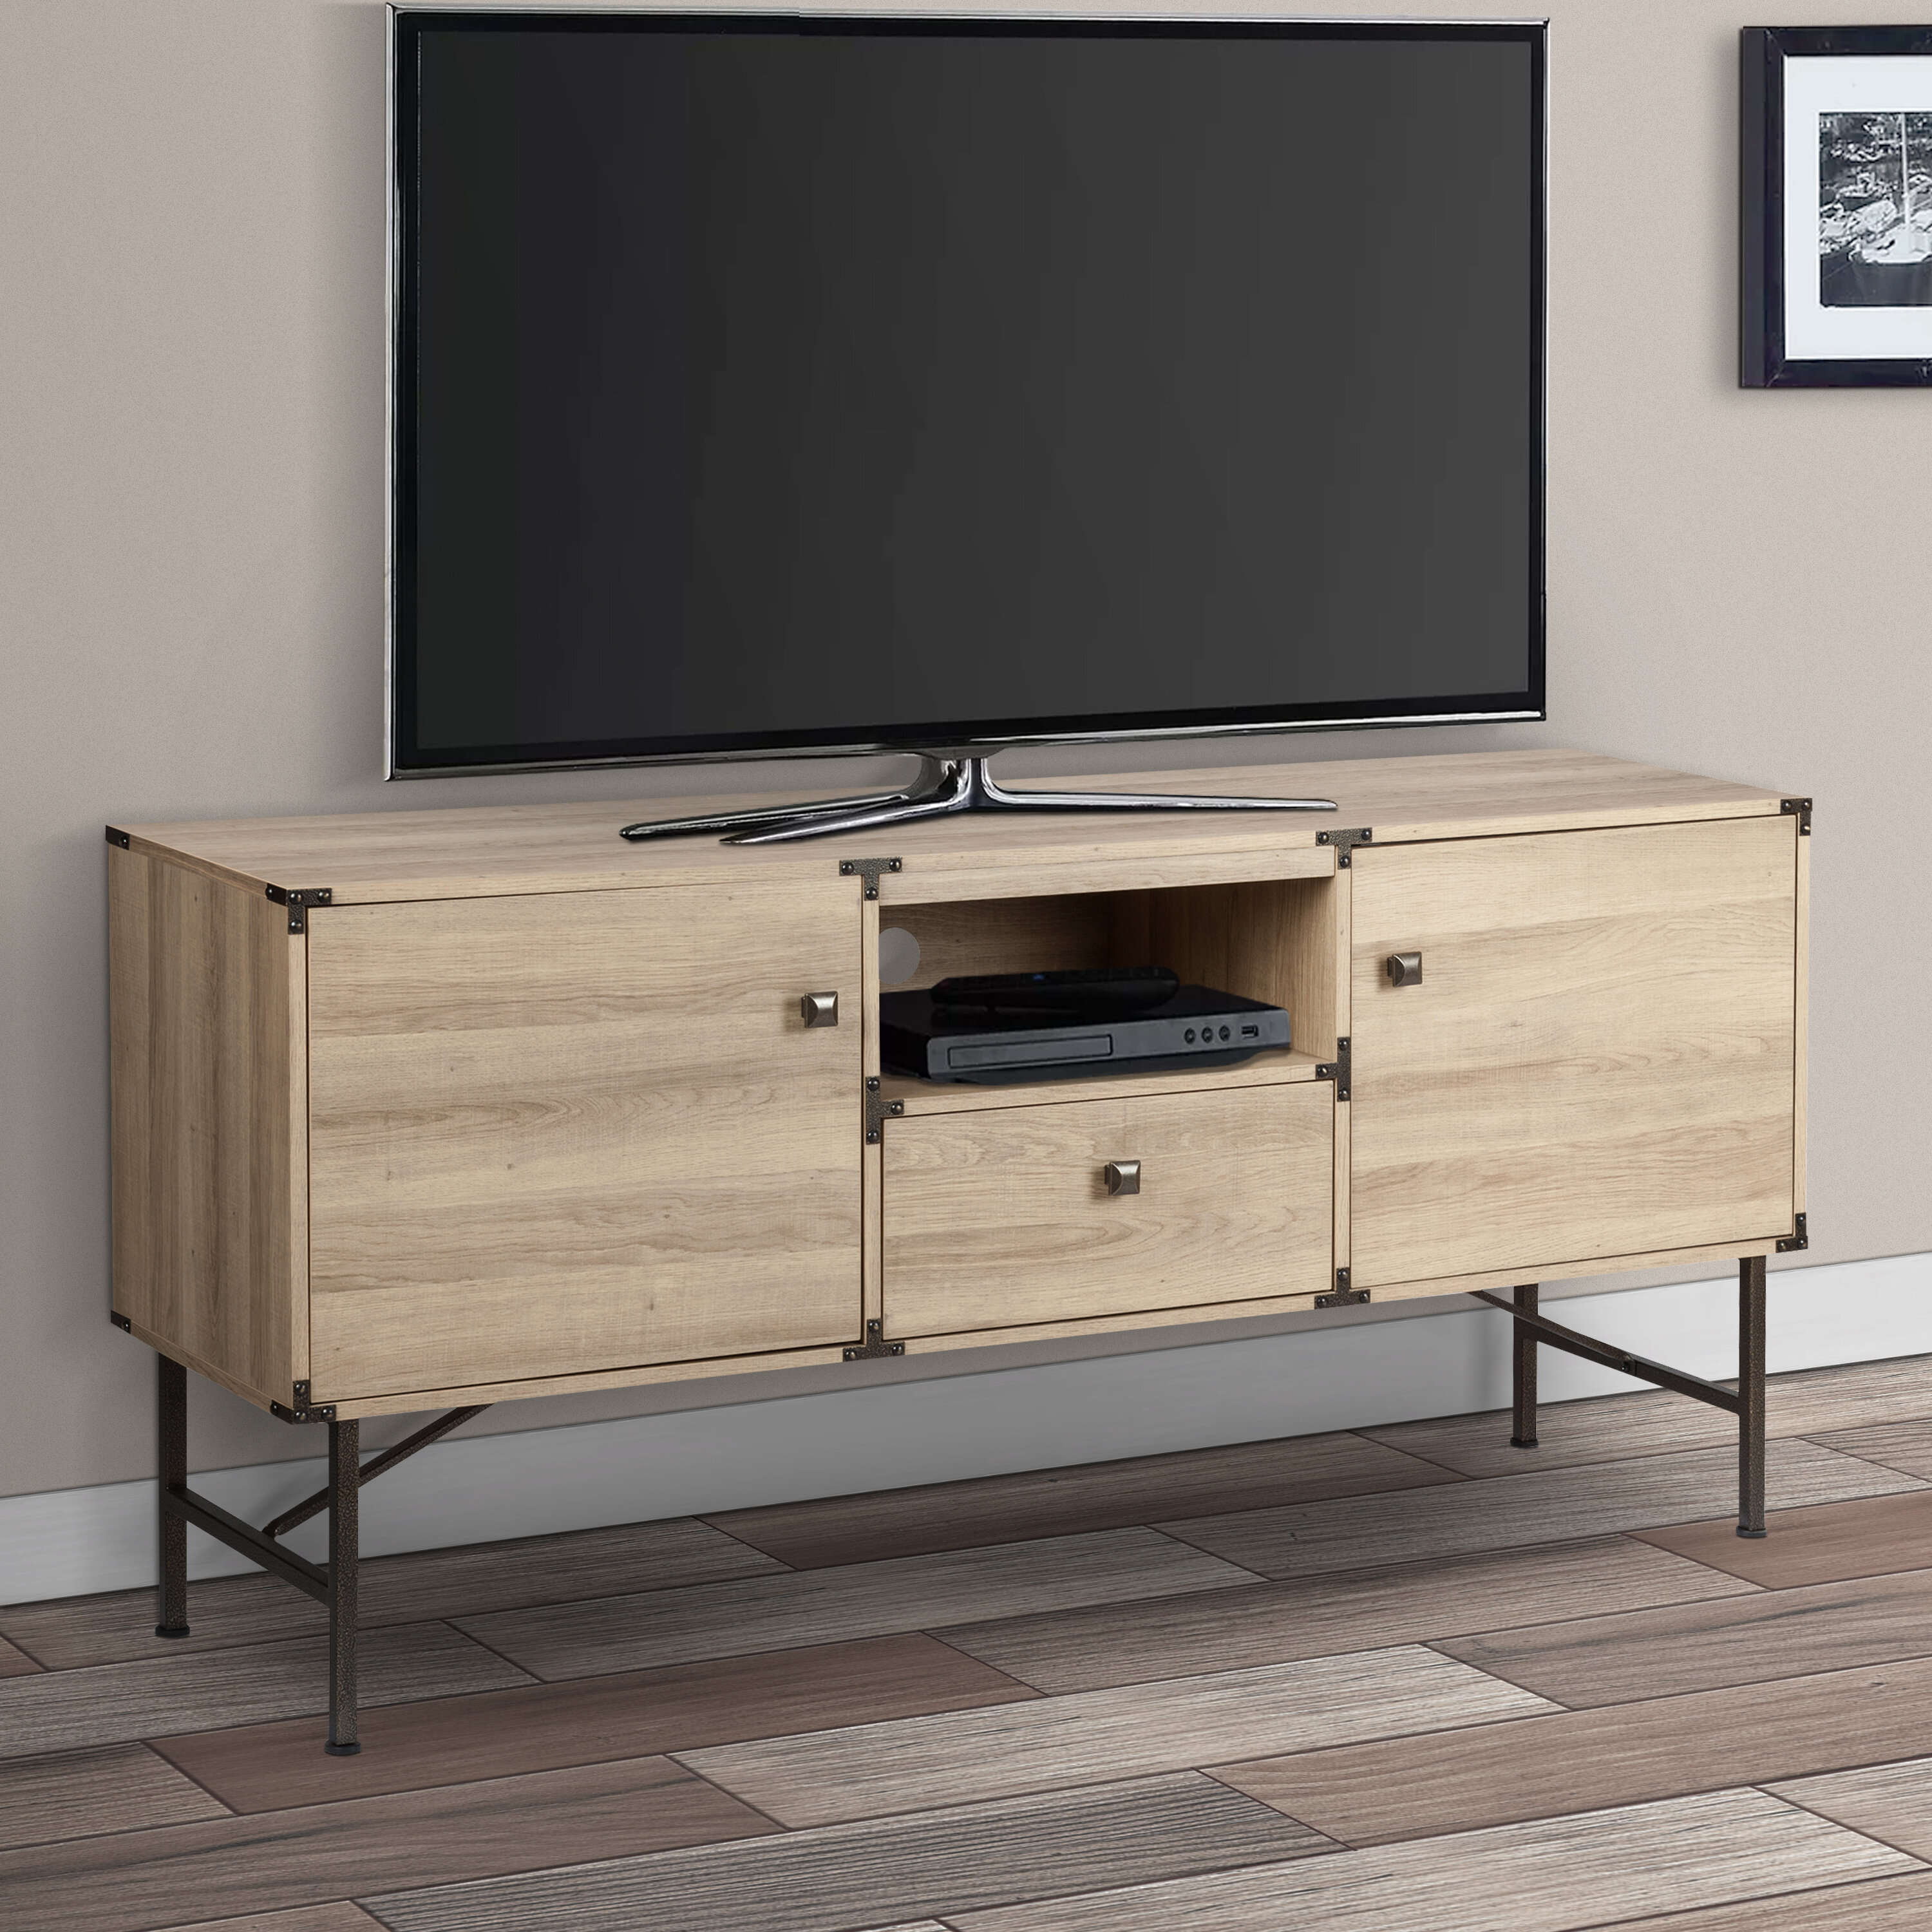 Drawer 17 Stories Filing Cabinets You Ll Love In 2021 Wayfair